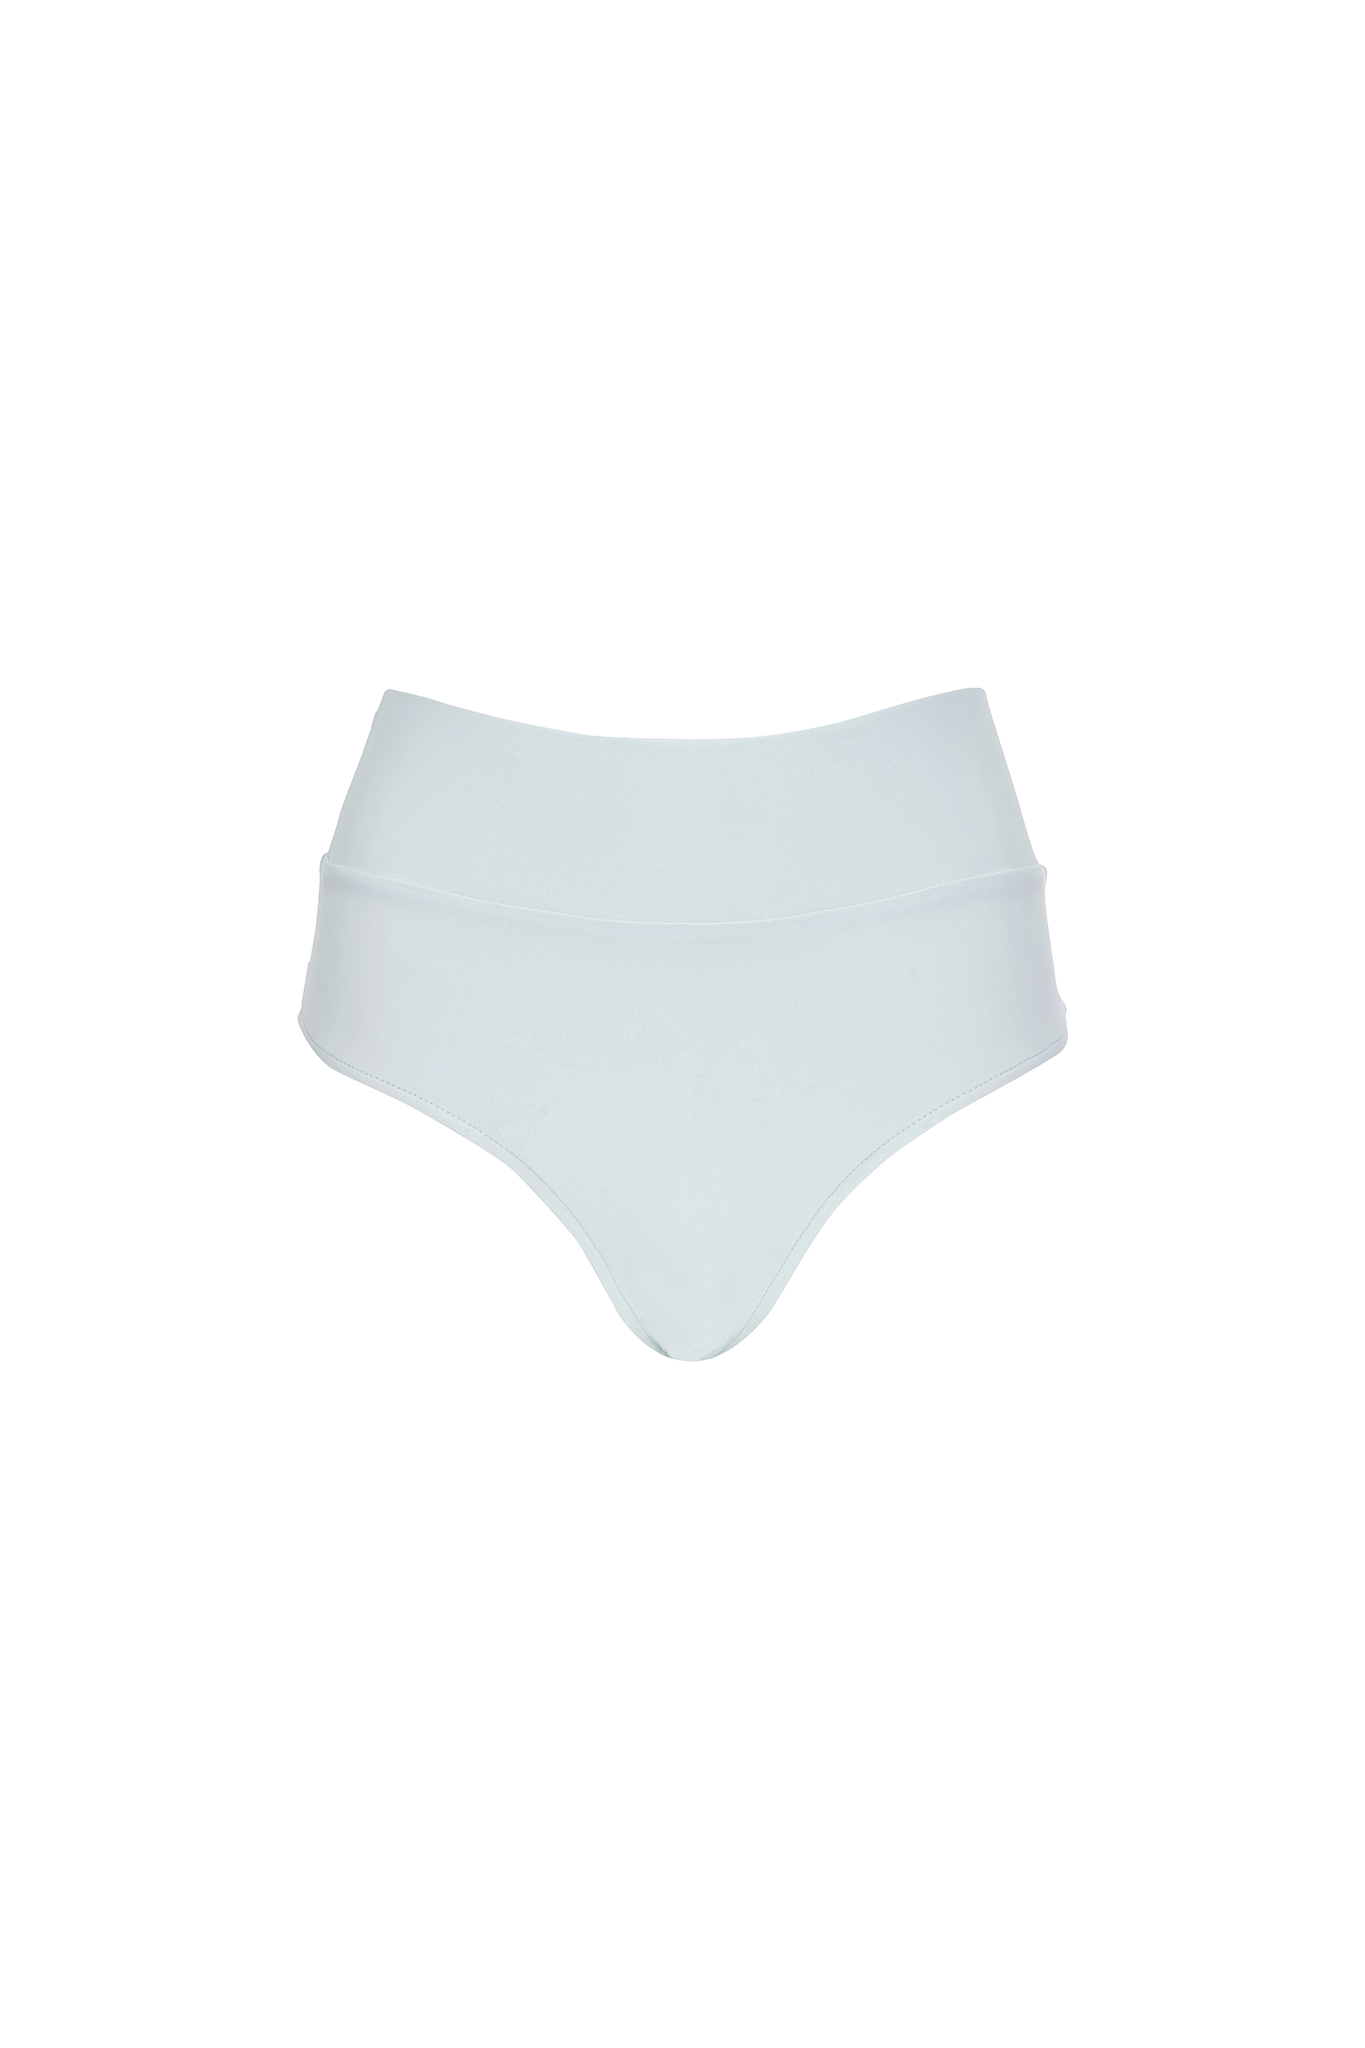 Henley high waist bottom in mint product shot front